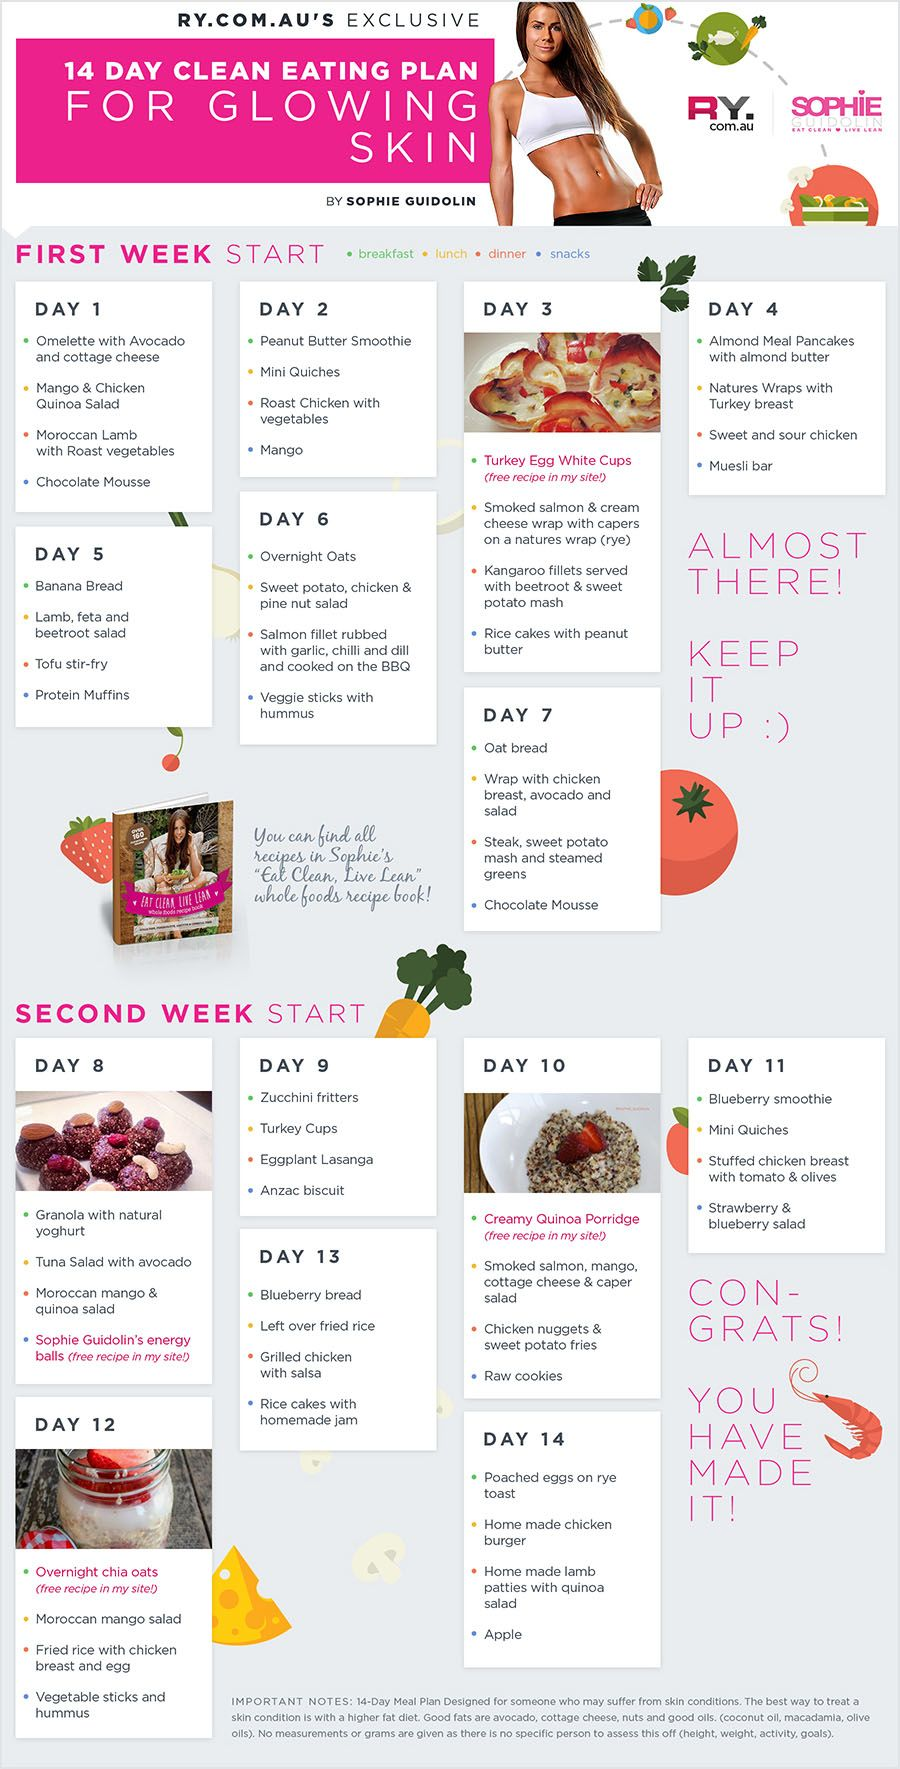 Beautiful skin diet plan and tips skincare acne anti ageing aging natural glowing foods health how to get also rh pinterest